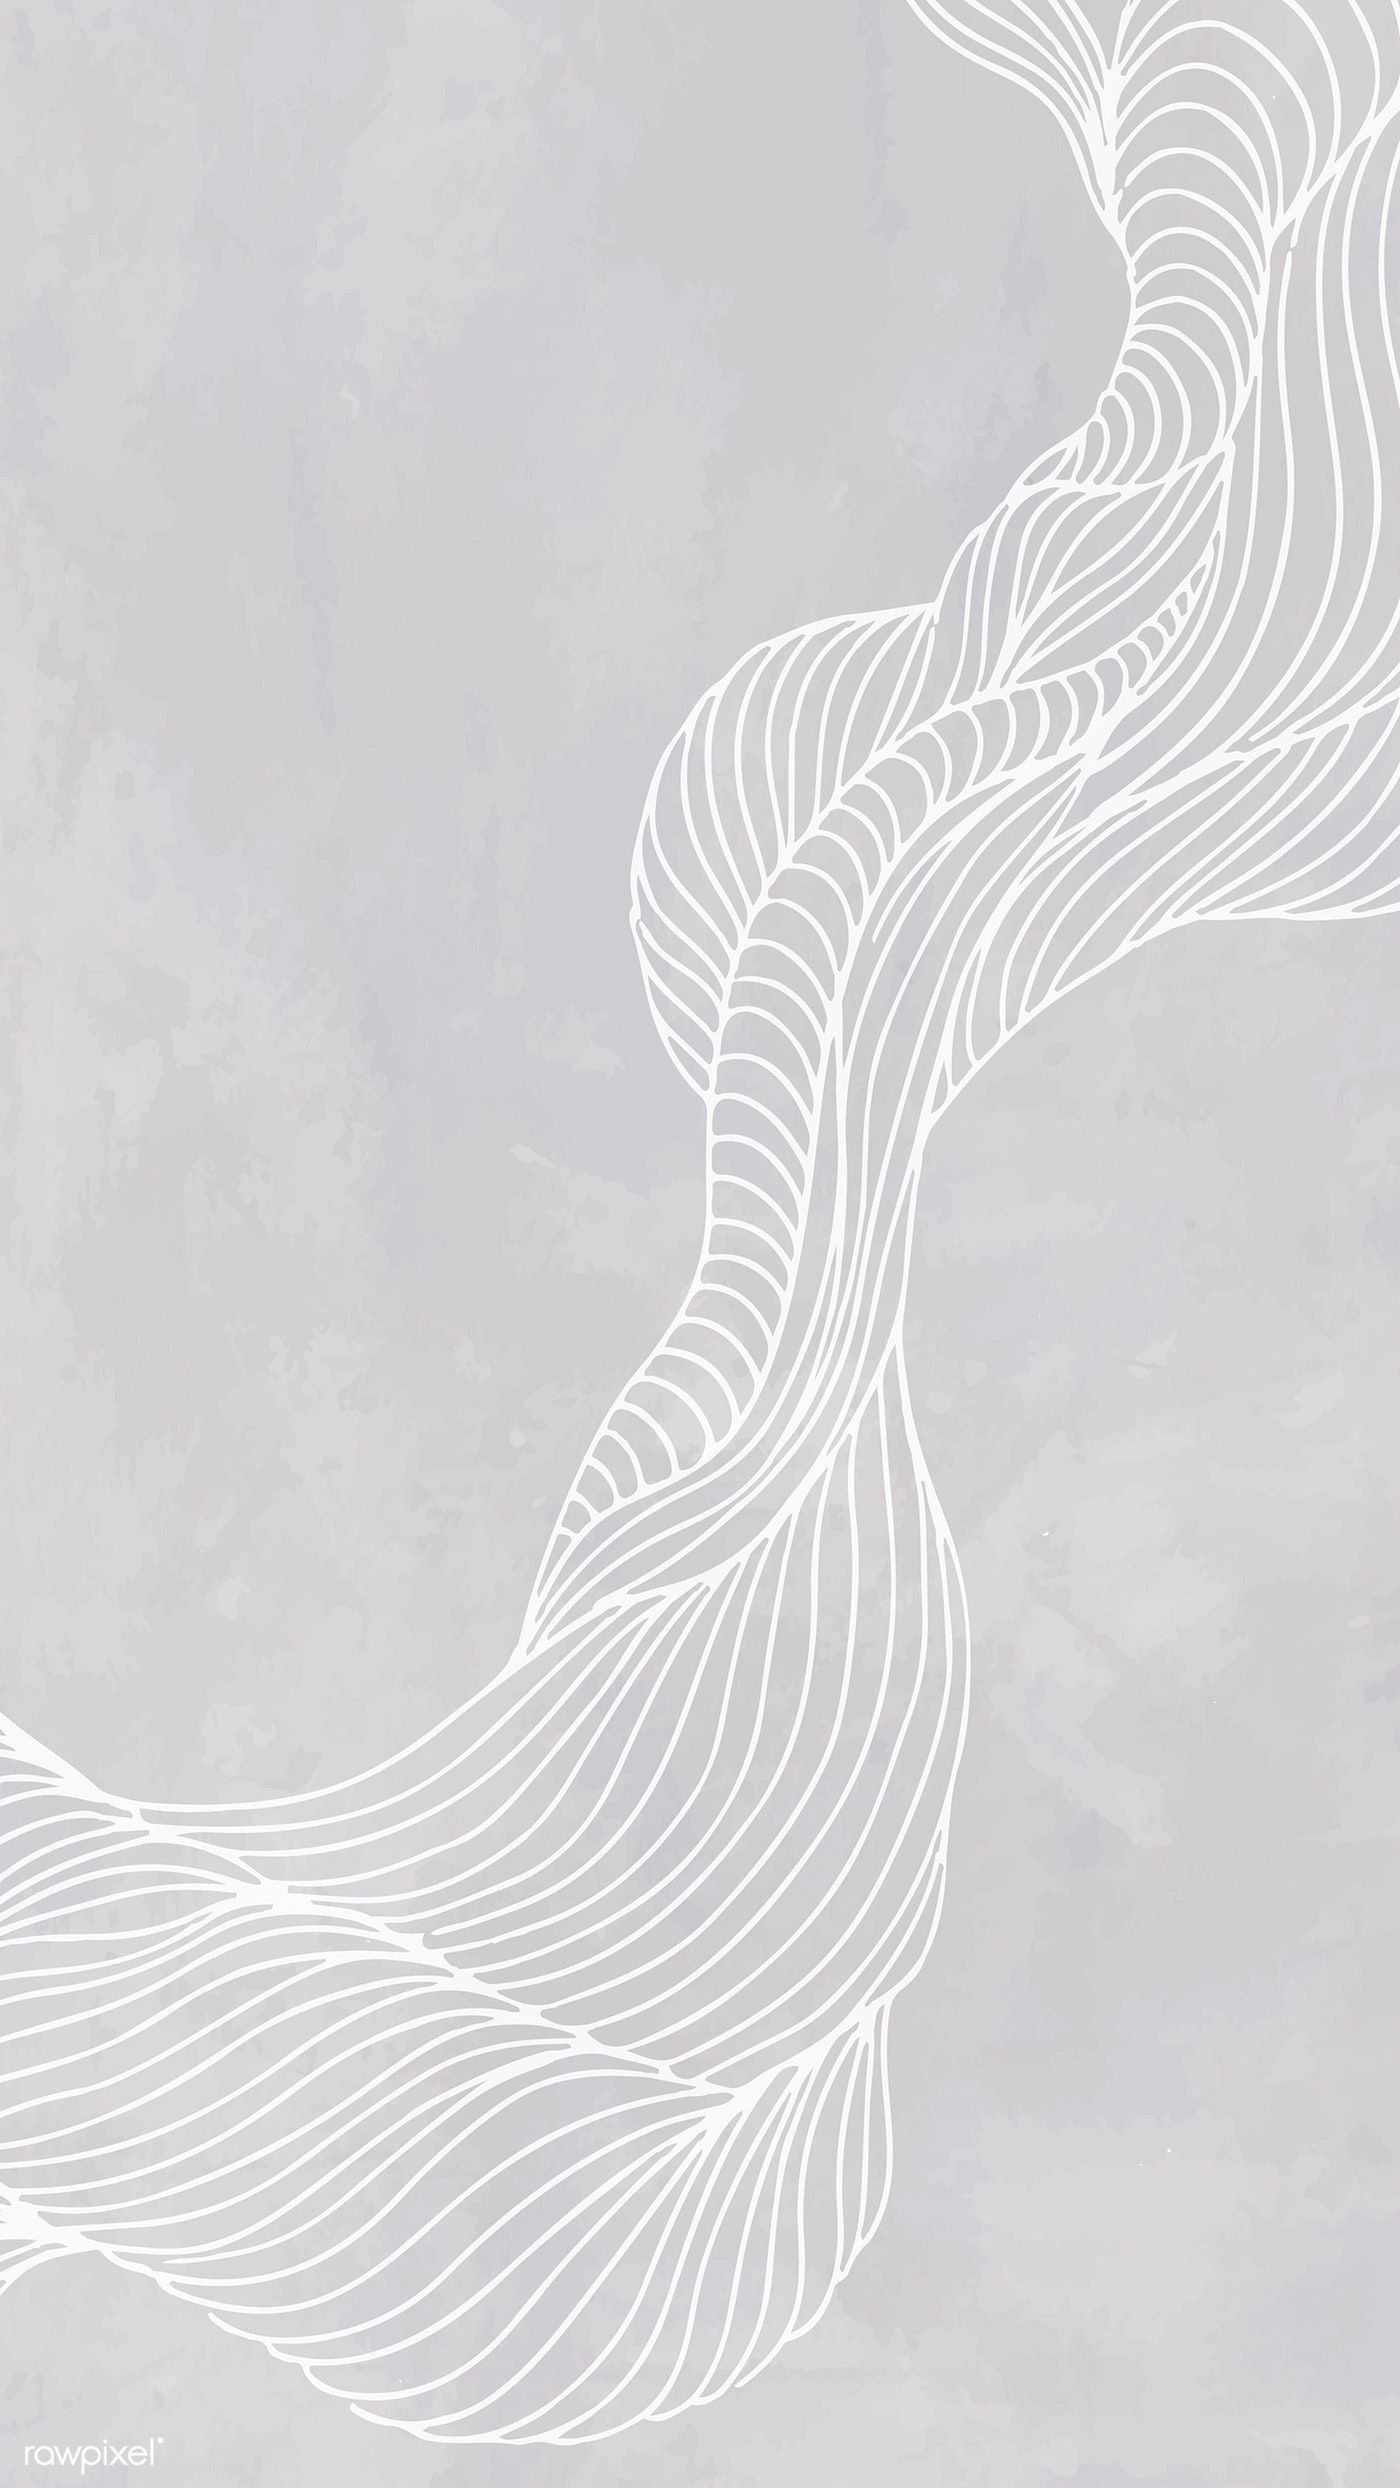 Download premium vector of Gray abstract line frame mobile phone wallpaper